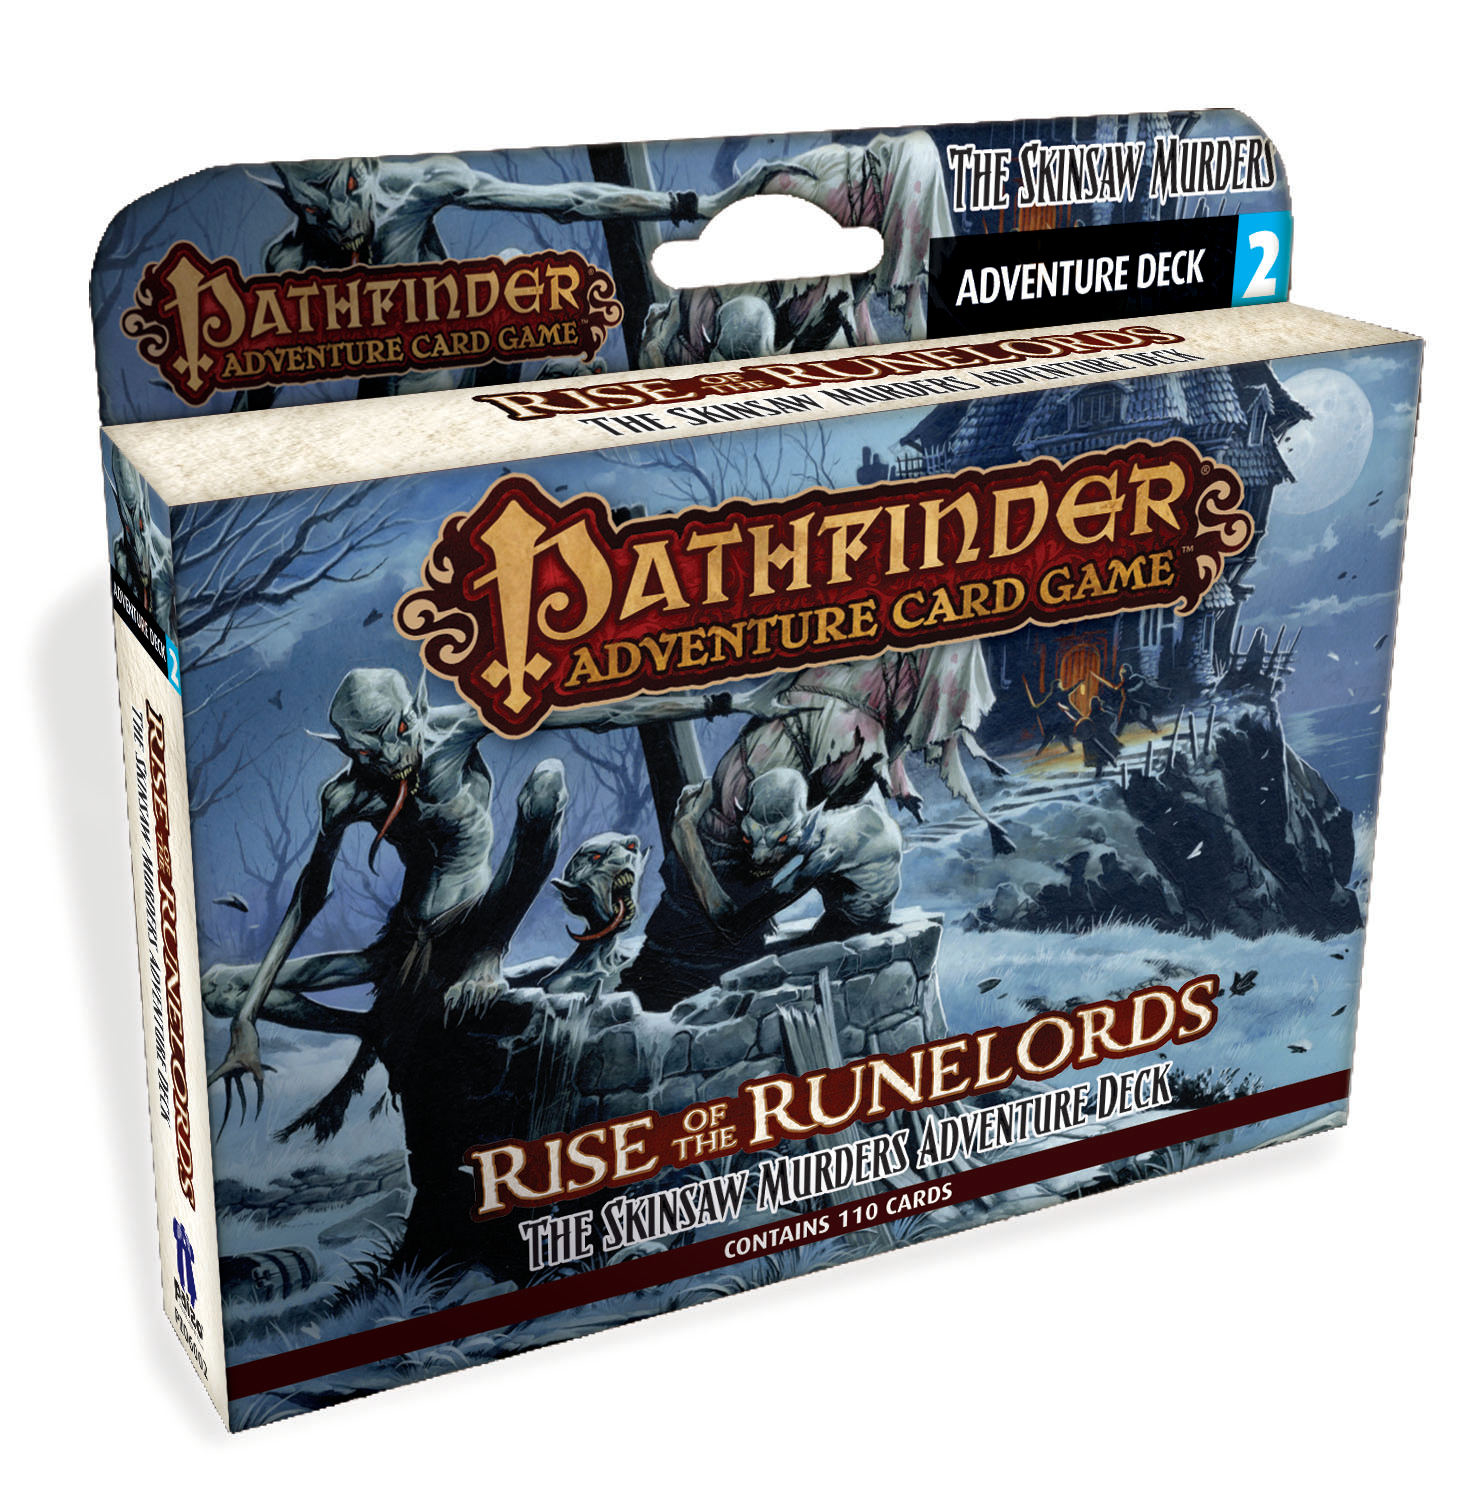 PATHFINDER ADV CARD GAME RISE OF RUNELORDS 2 SKINSAW MURDERS